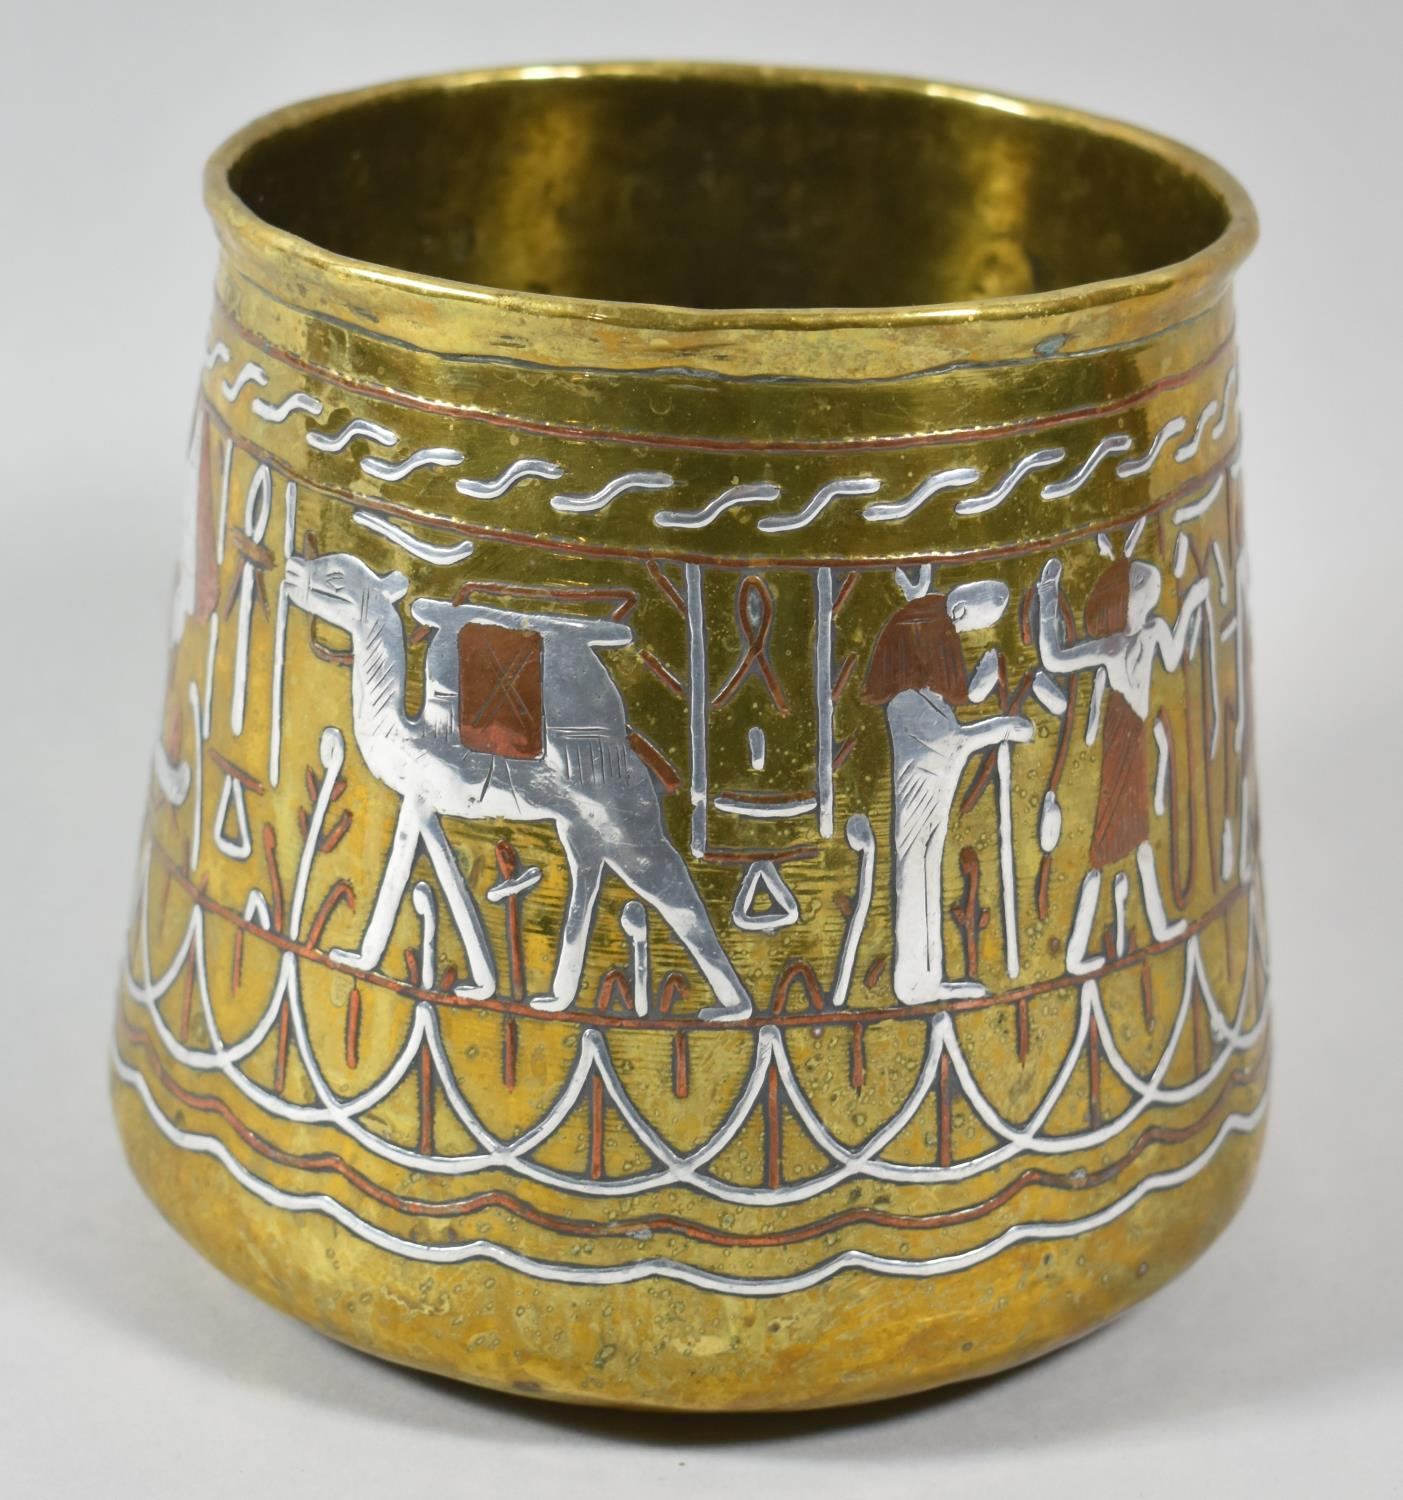 A Mixed Metal Cairo Ware Vase with Egyptian Hieroglyphic Decoration, 14.5cm High